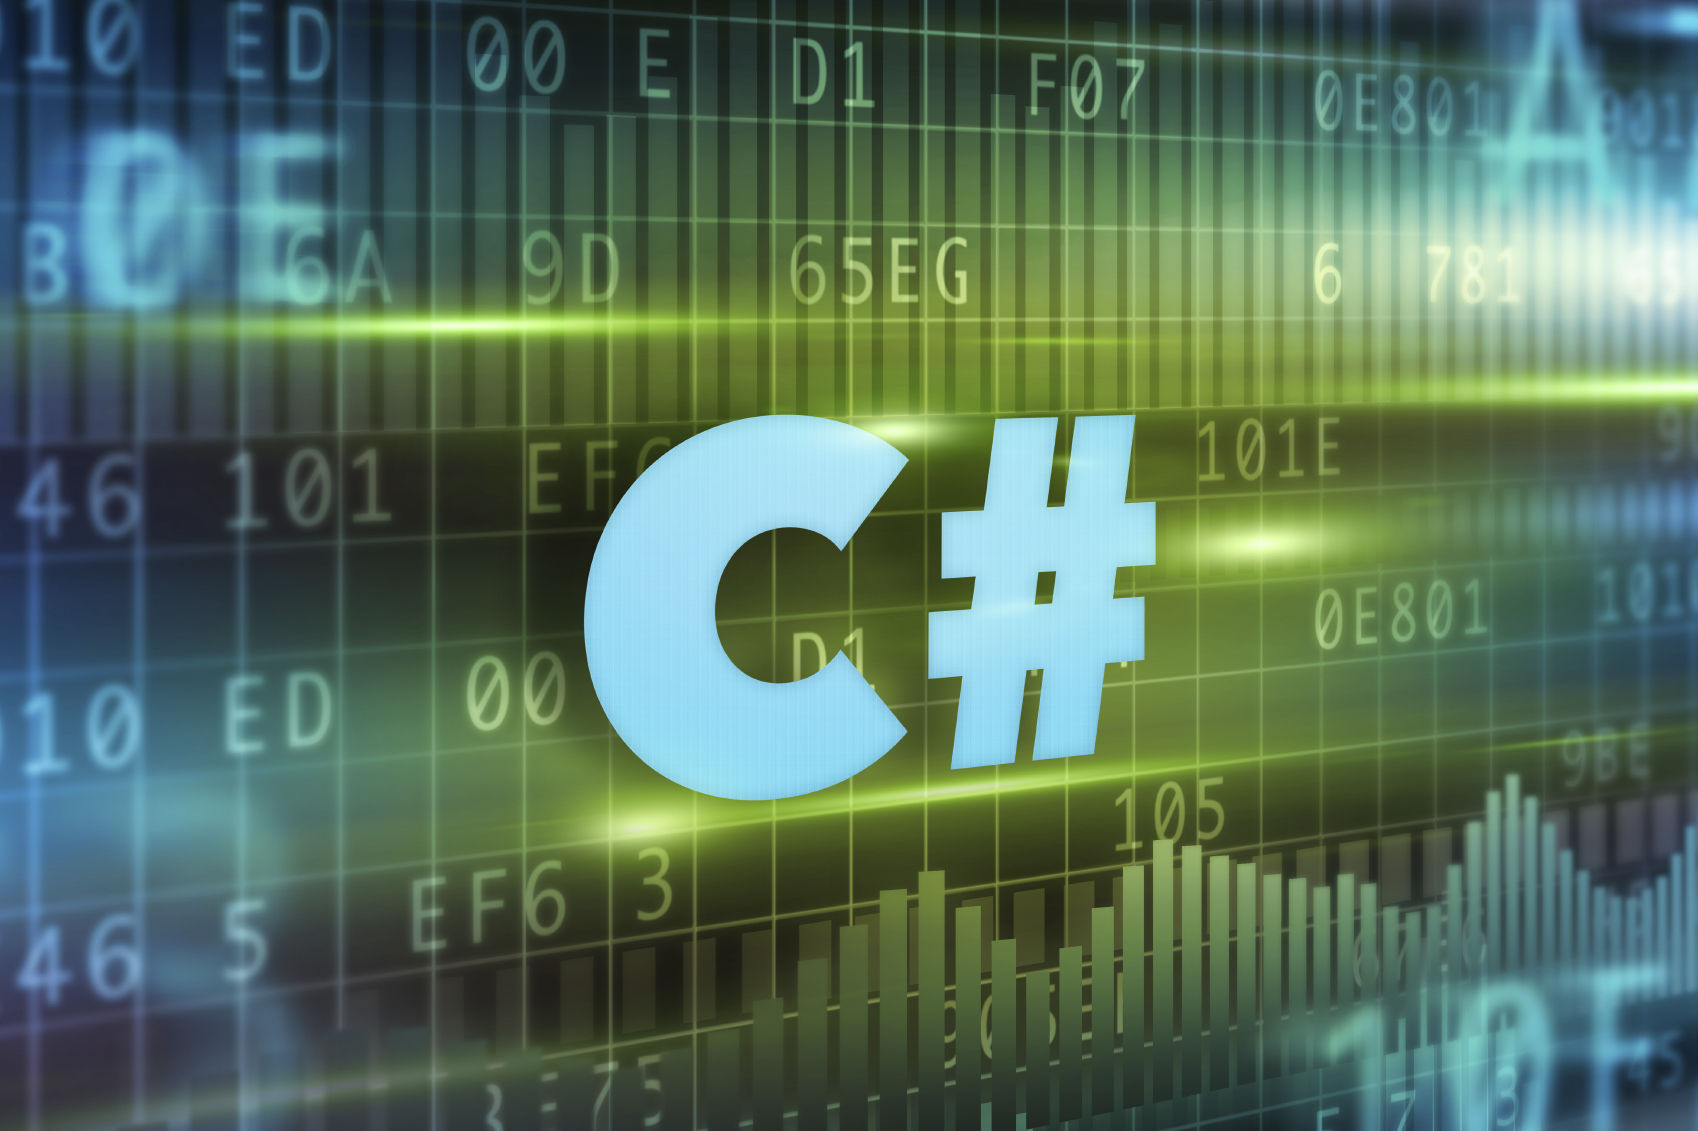 C# concept green background with blue text